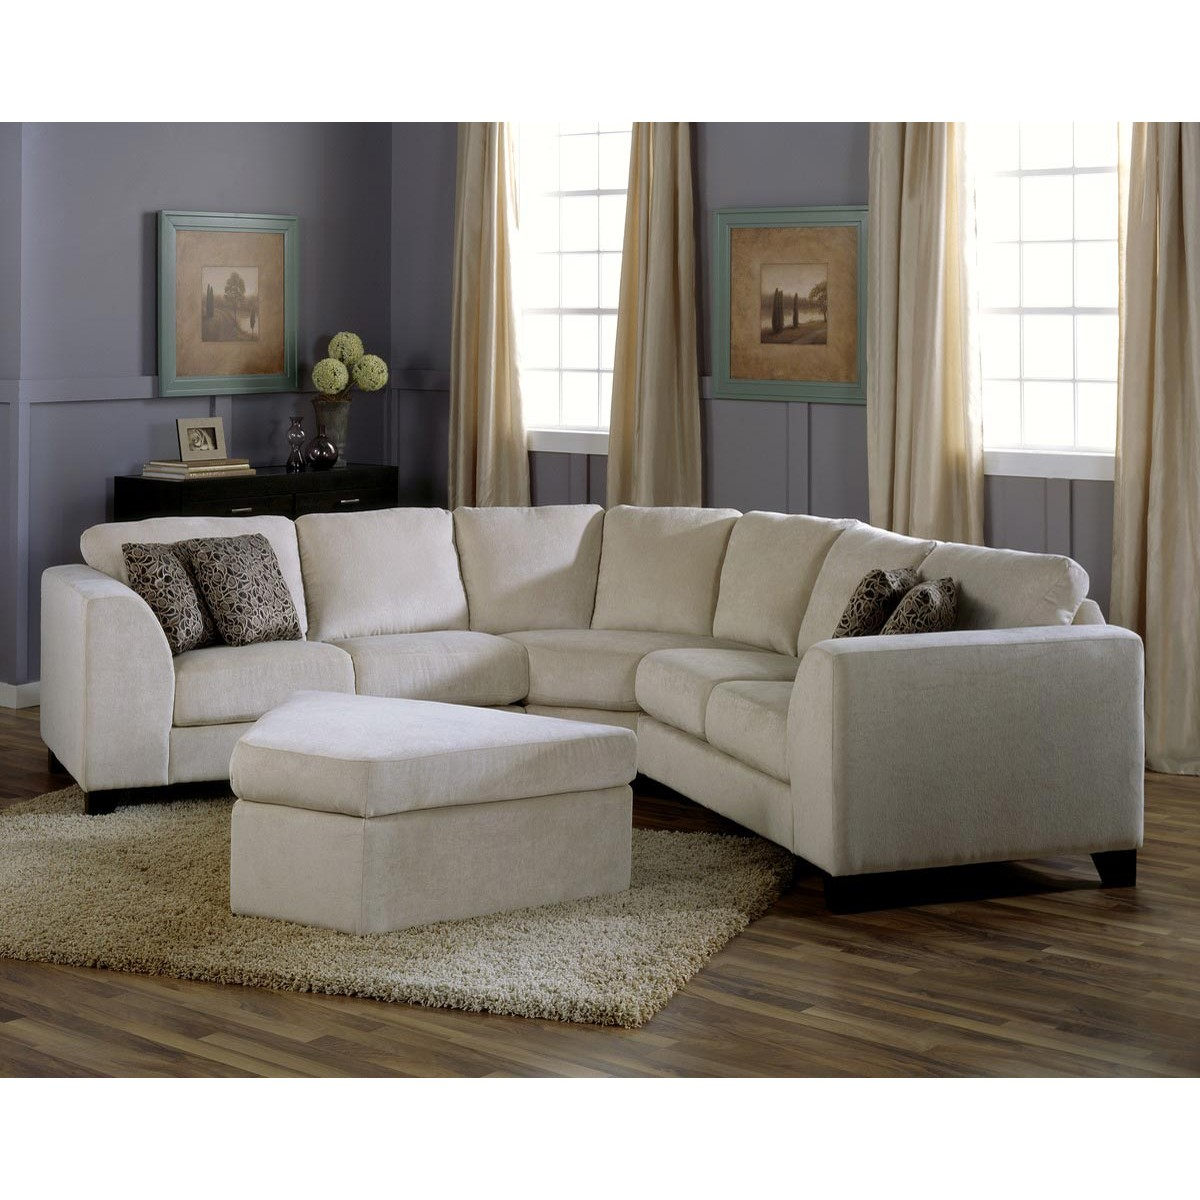 Pleasant Palliser Juno Sectional Andrewgaddart Wooden Chair Designs For Living Room Andrewgaddartcom